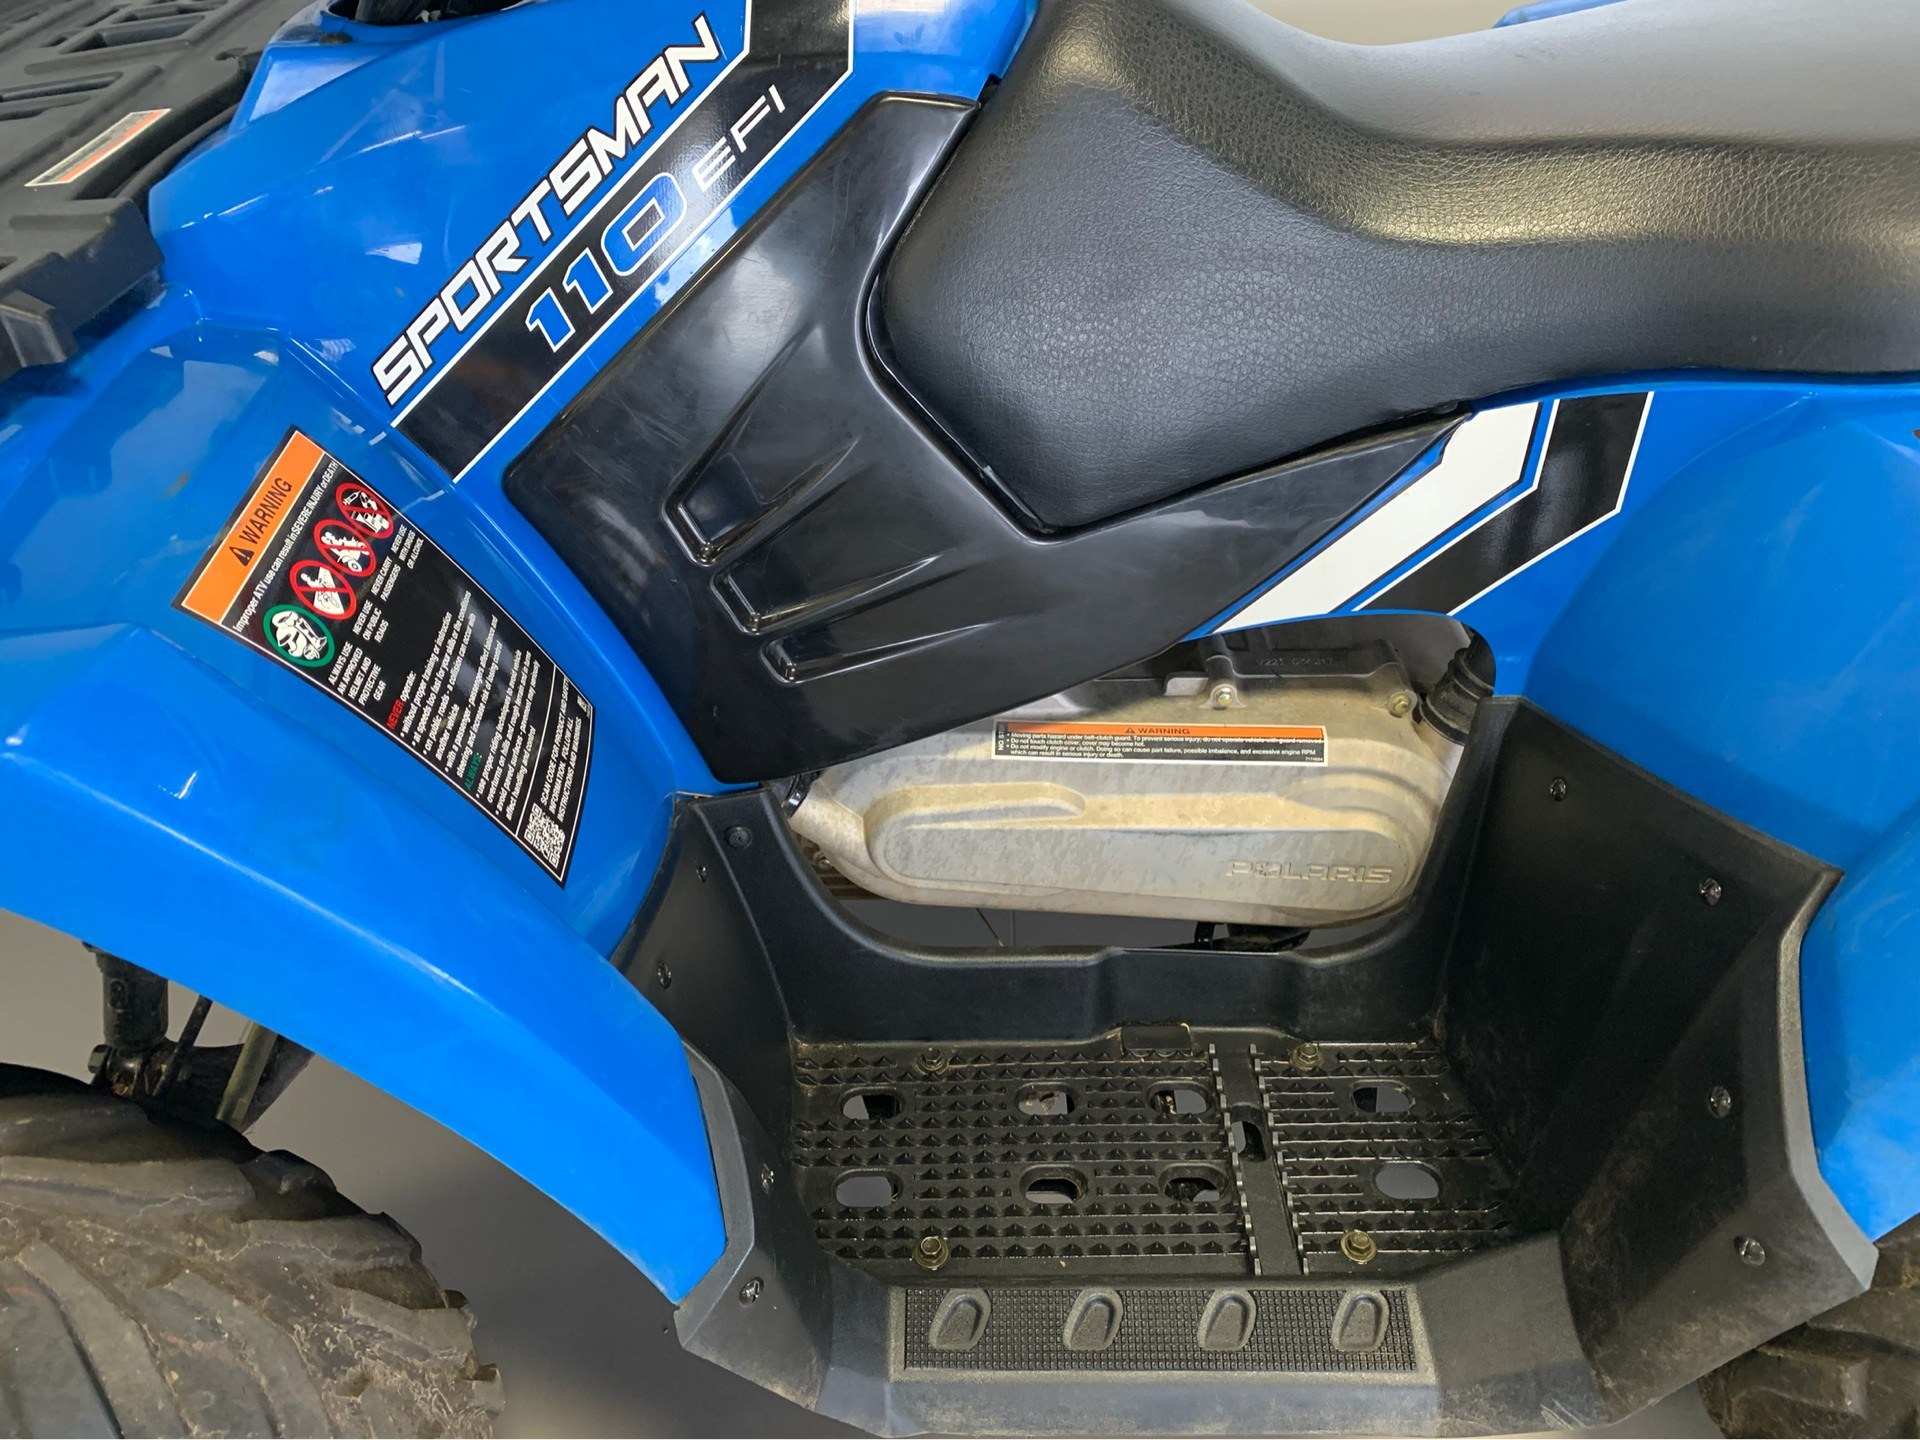 2019 Polaris Sportsman 110 EFI in Springfield, Missouri - Photo 6